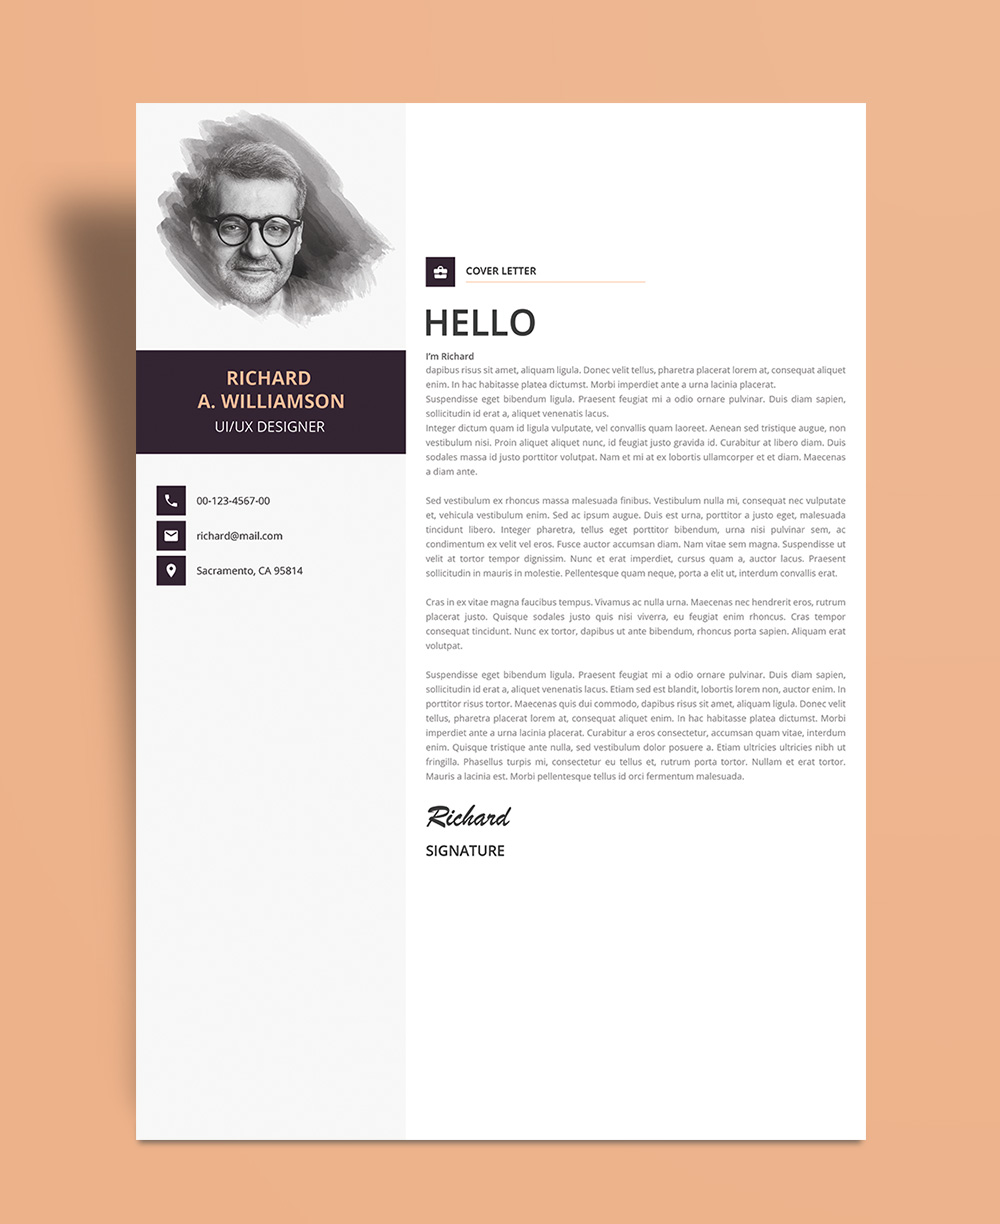 Creative Professional Resume (CV) Design Template With Cover Letter PSD File (4)